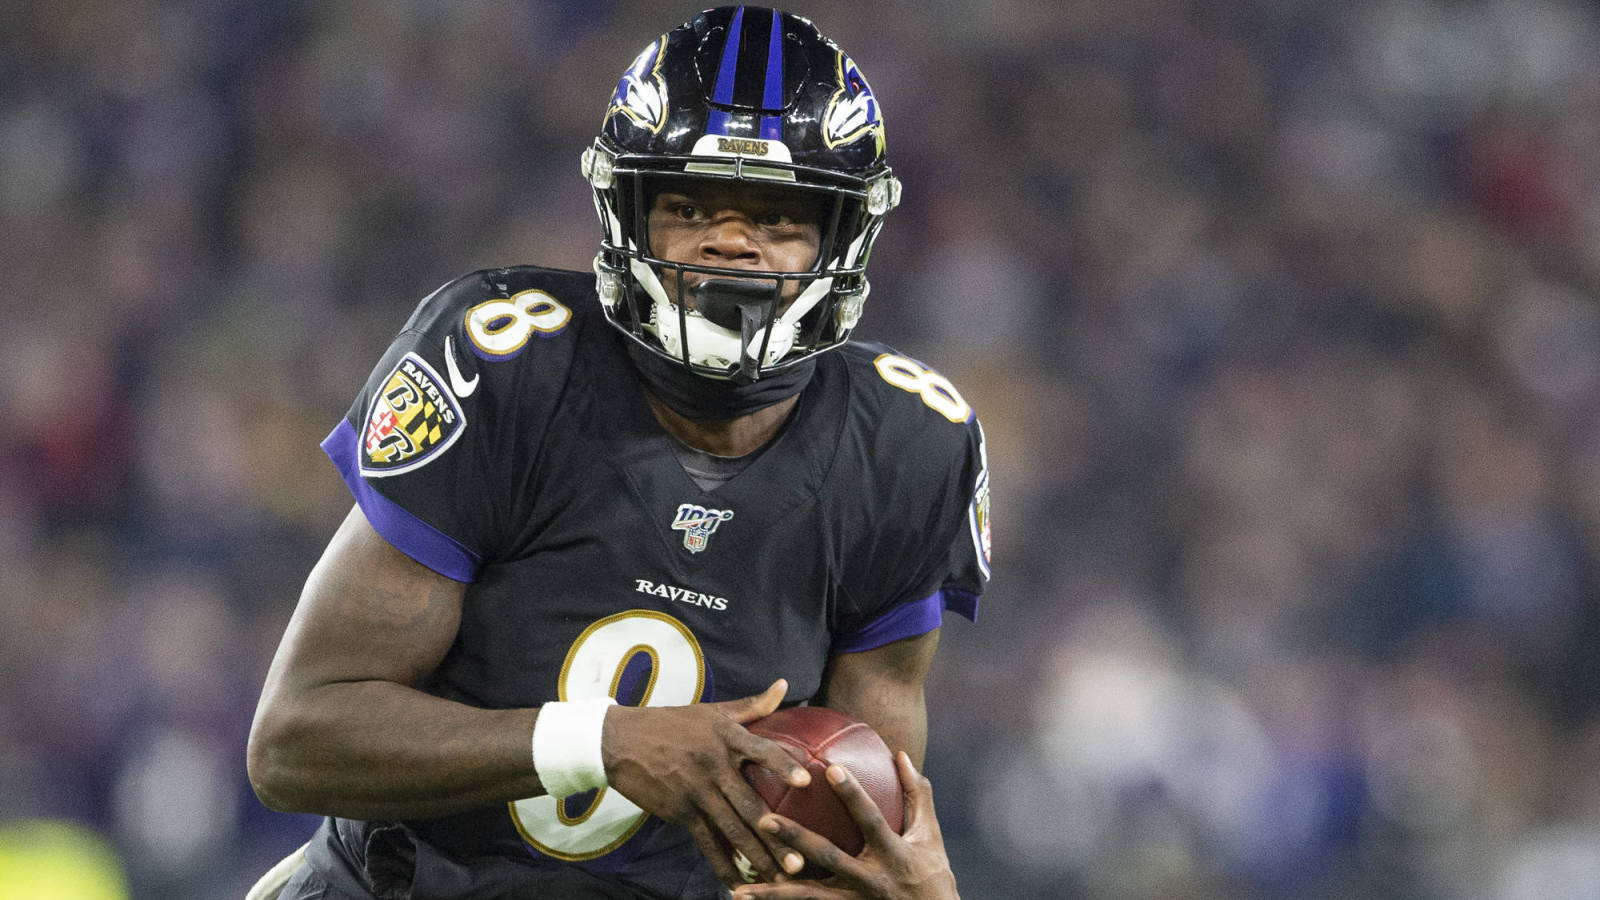 Ravens must go all in this offseason to catch the Chiefs